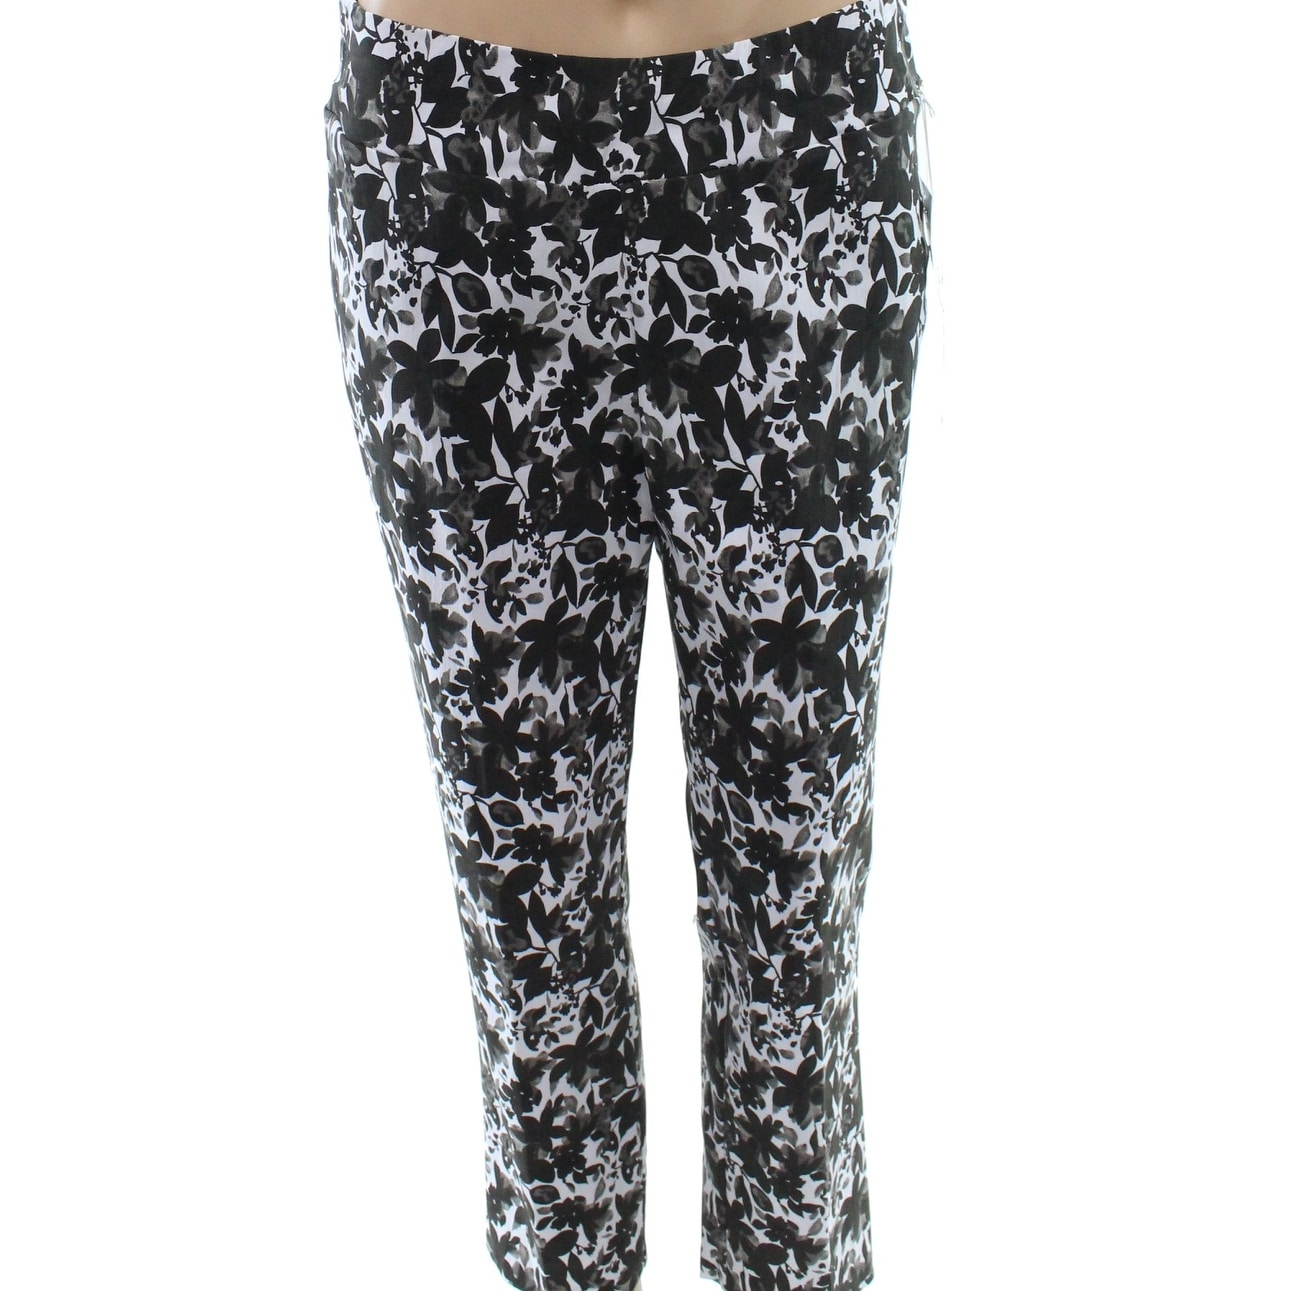 7da68ab4327 Shop Ilusion NEW Black Women s Size 8 Floral Capris Cropped Stretch Pants -  Free Shipping On Orders Over  45 - Overstock.com - 20083949